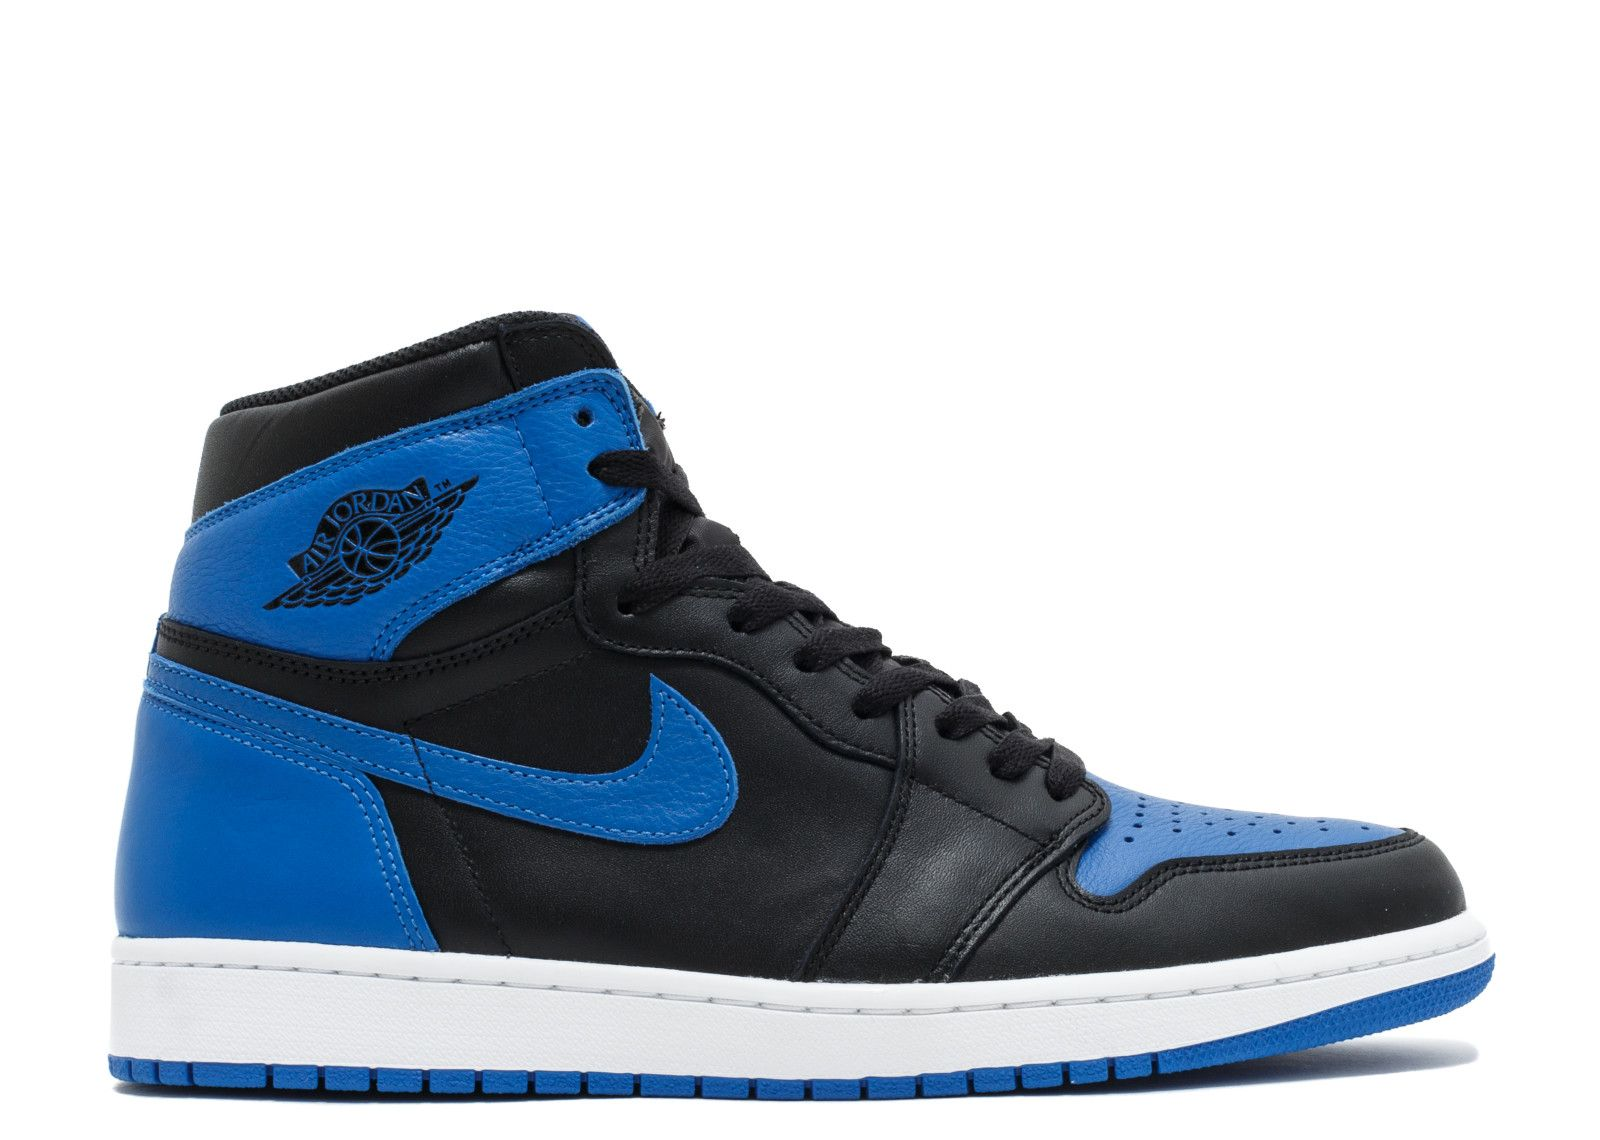 Air Jordan 1 Retro High Og Royal 2017 Release With Images